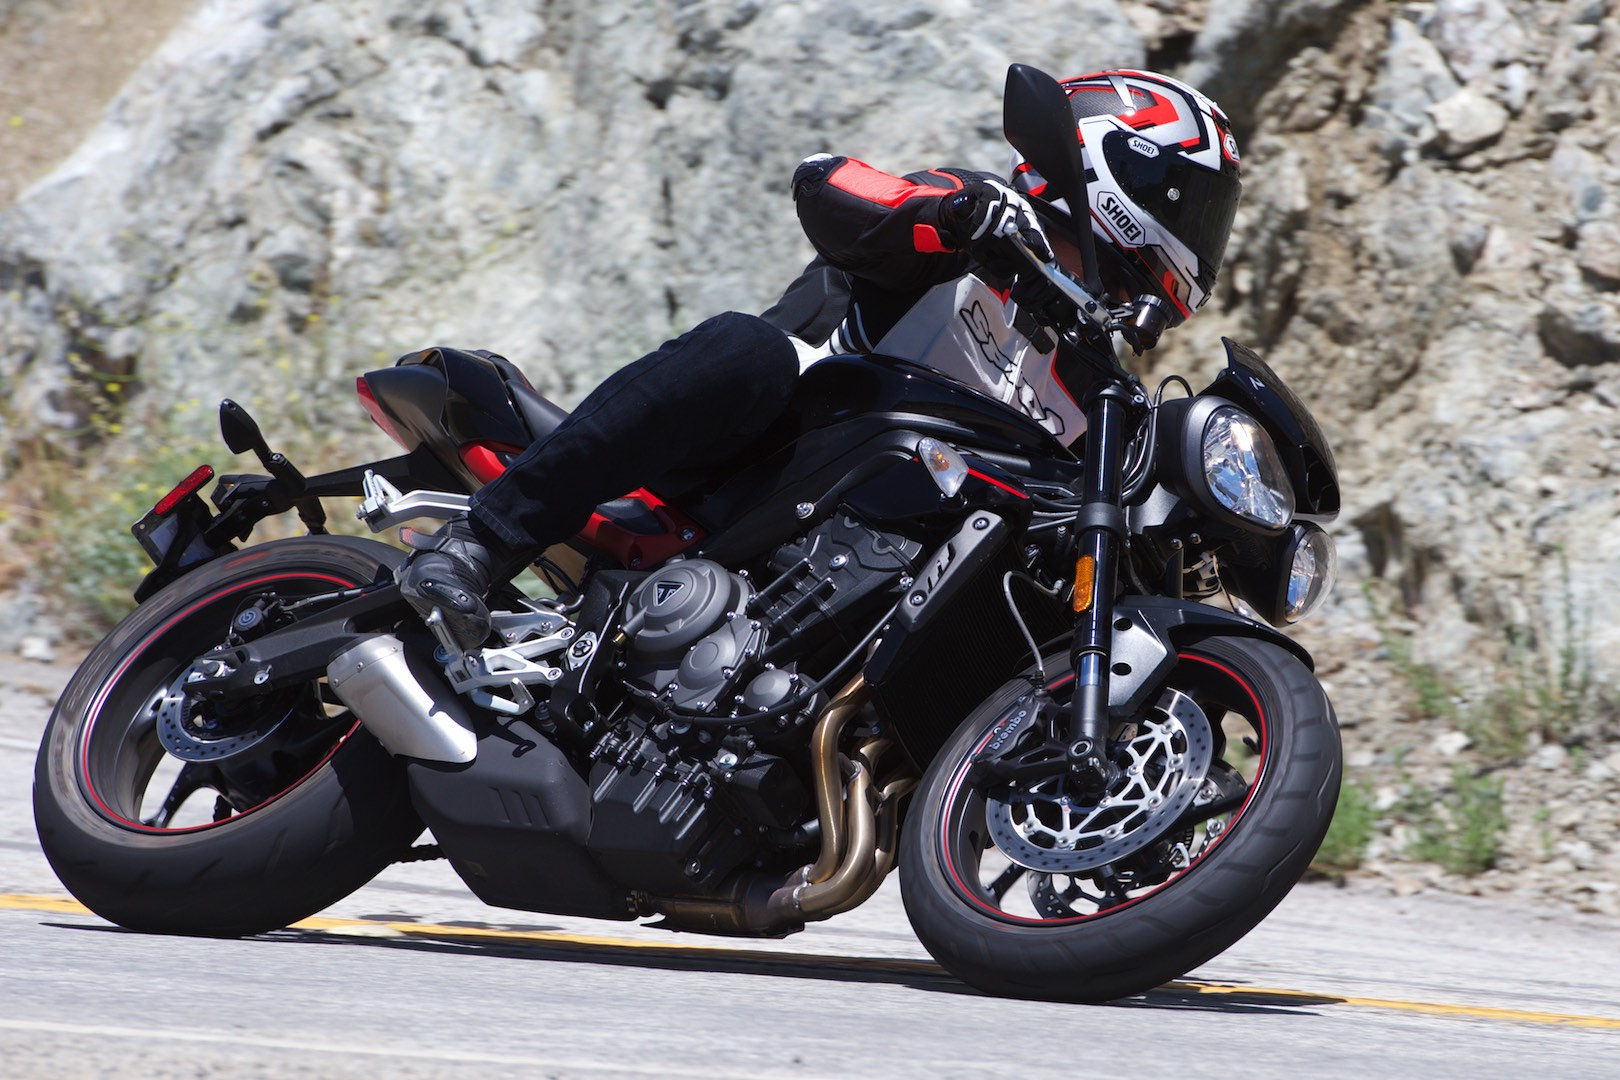 2019 Triumph Speed Triple Review